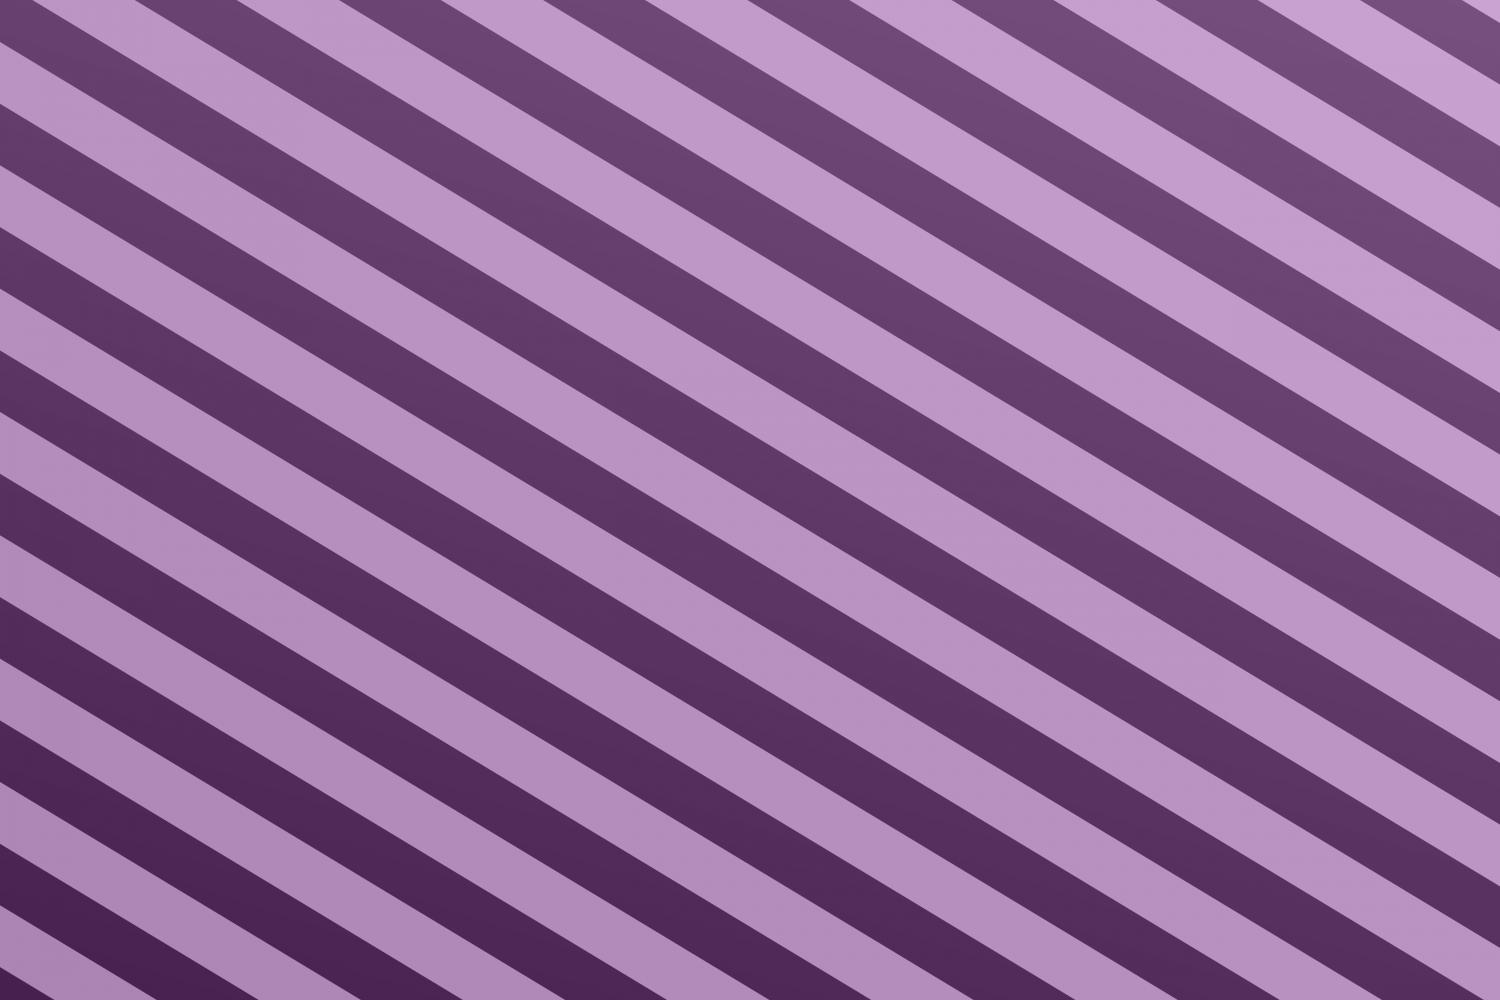 Download Free Gradient Stripe Background Graphic By Davidzydd Creative Fabrica for Cricut Explore, Silhouette and other cutting machines.